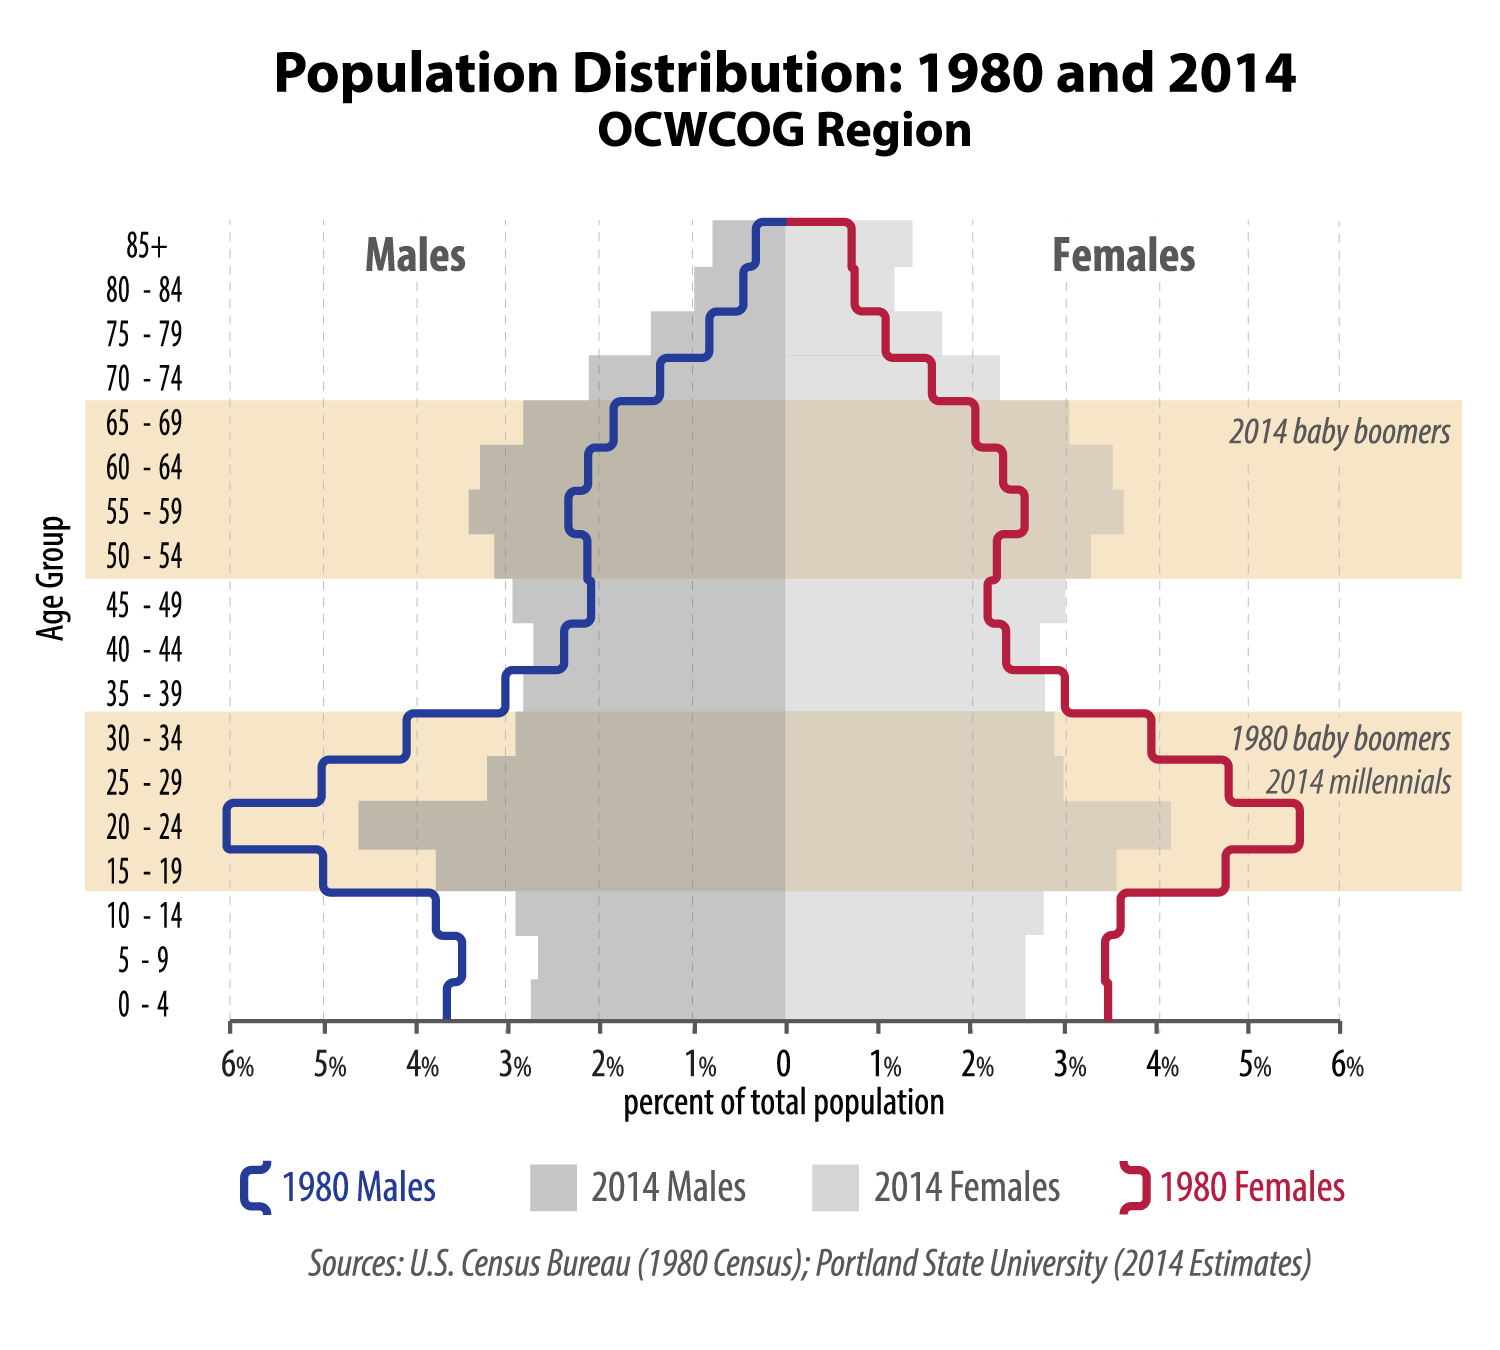 Population Distribution: 1980 and 2014 in the Region